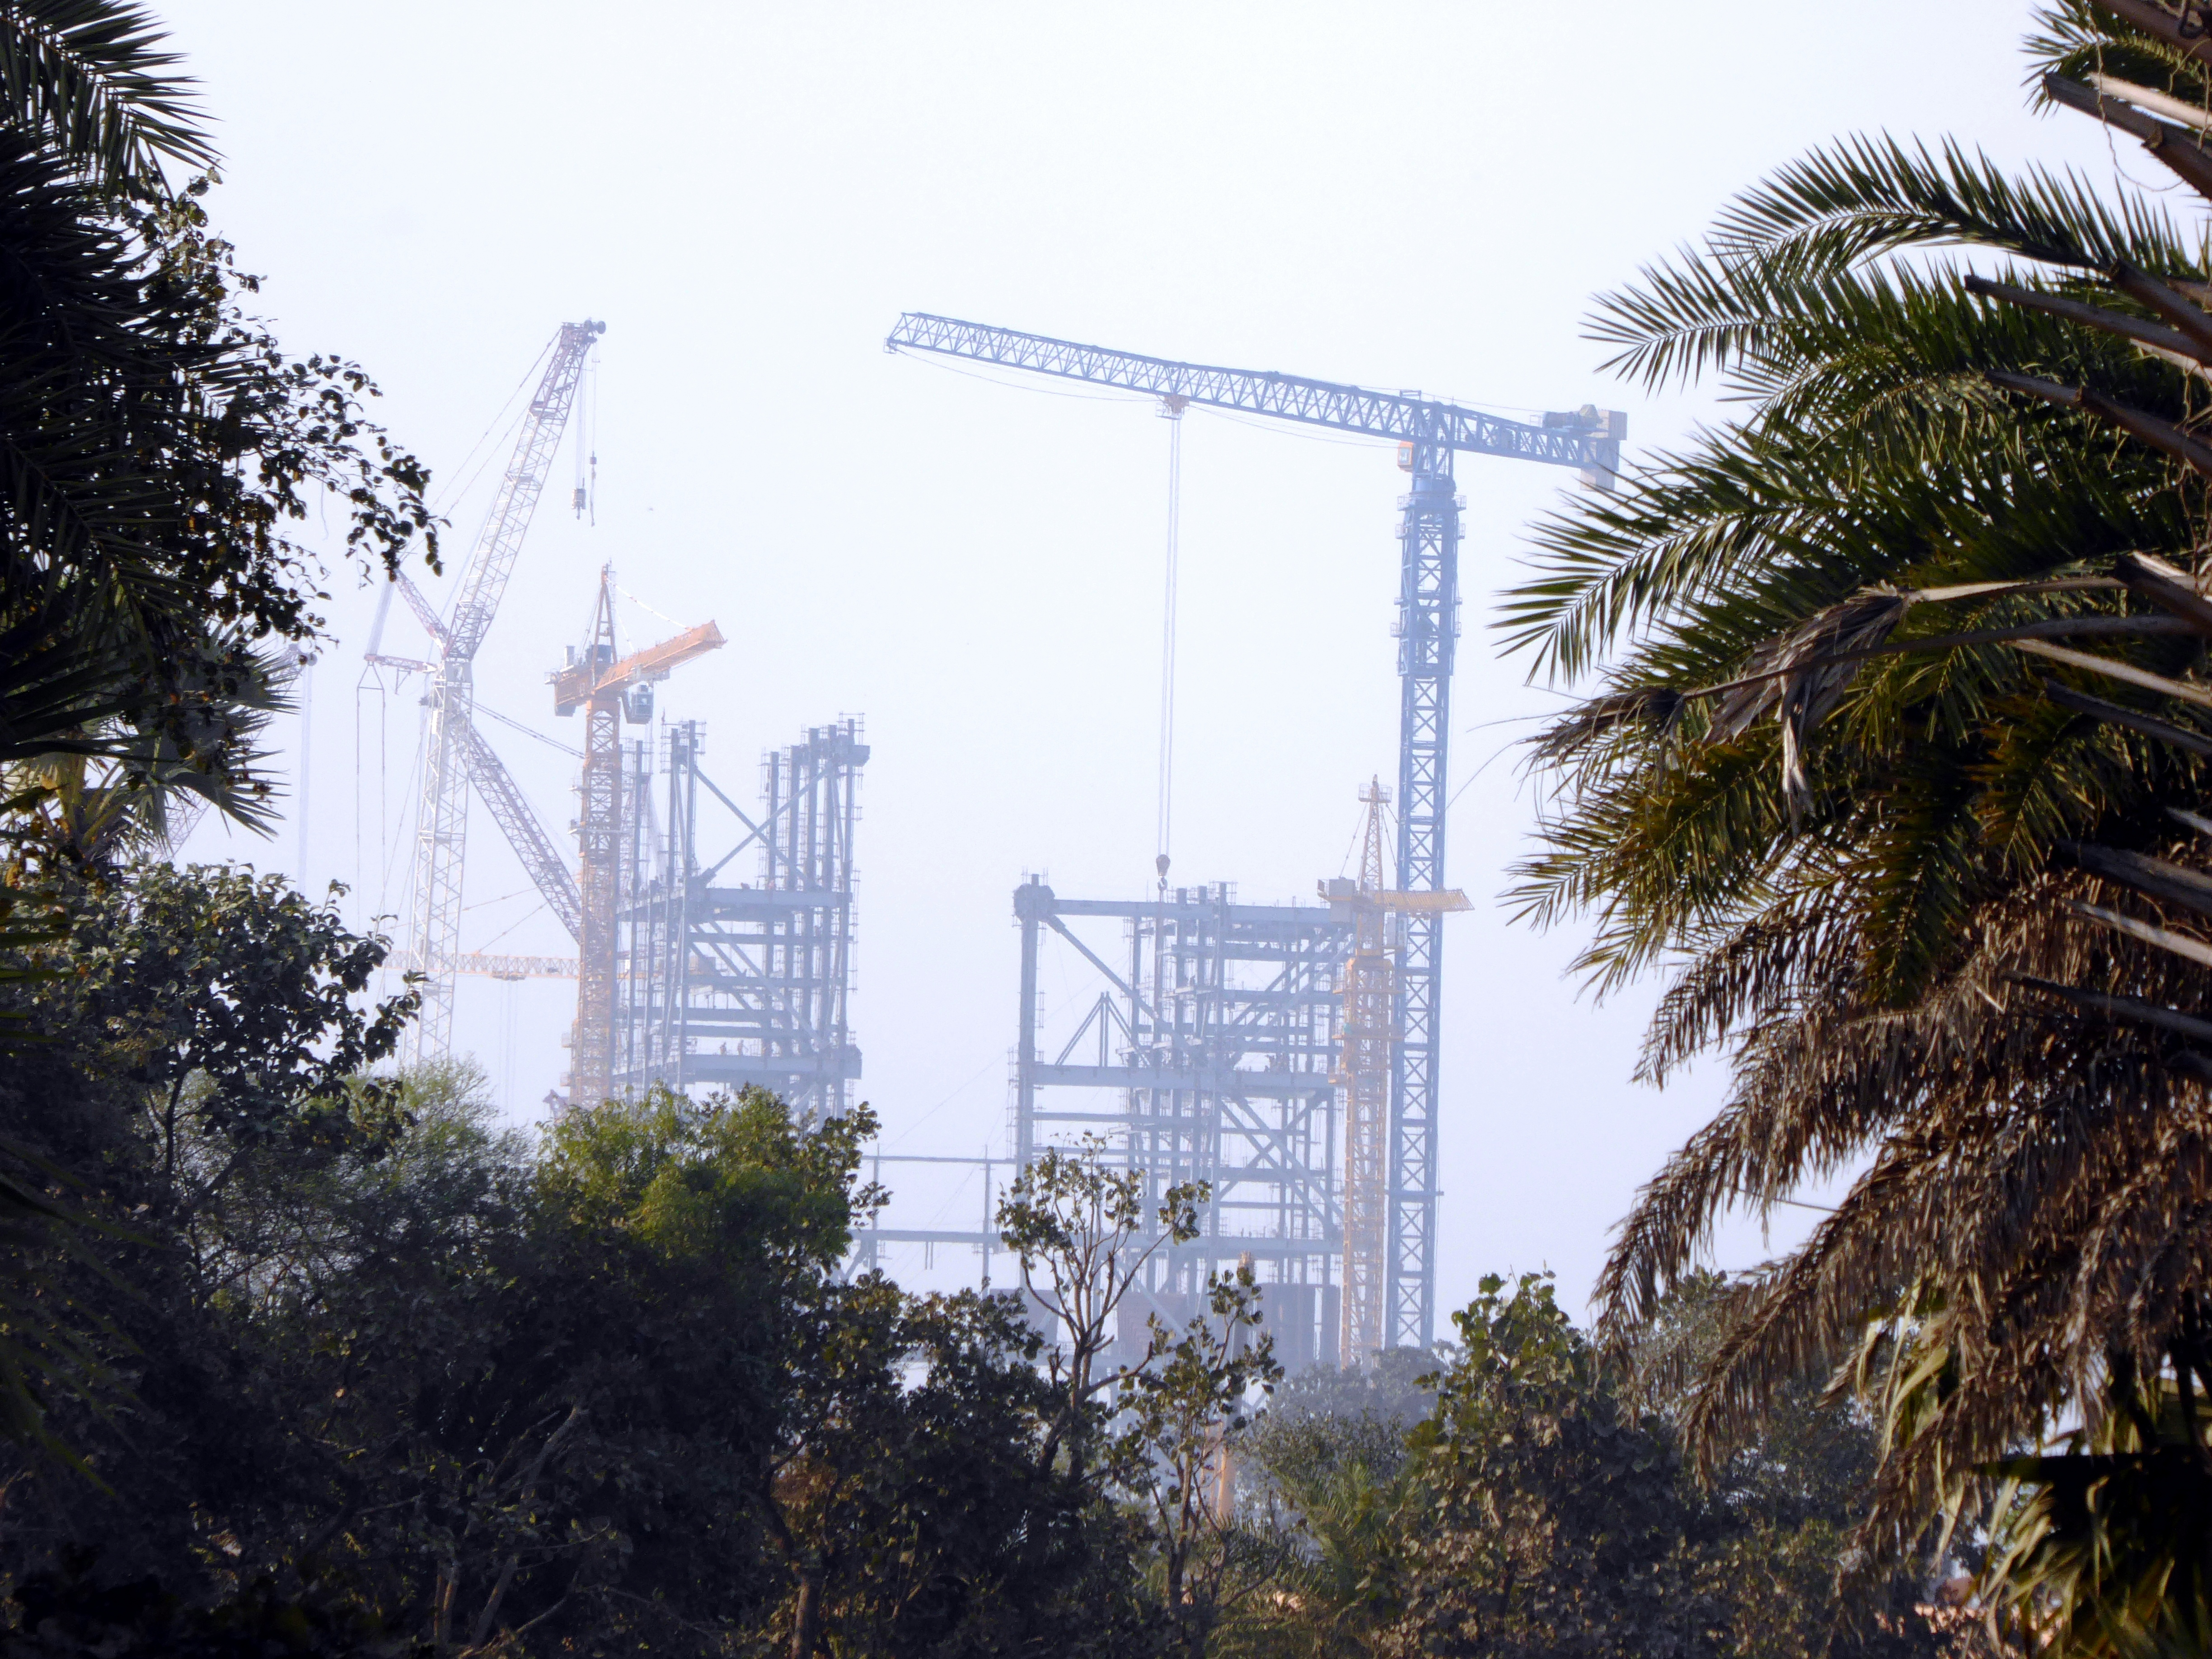 A new Adani coal-power station under construction in India - the Group's expansion of coal exploitation has harmed its reputation. Photo Geoff Law